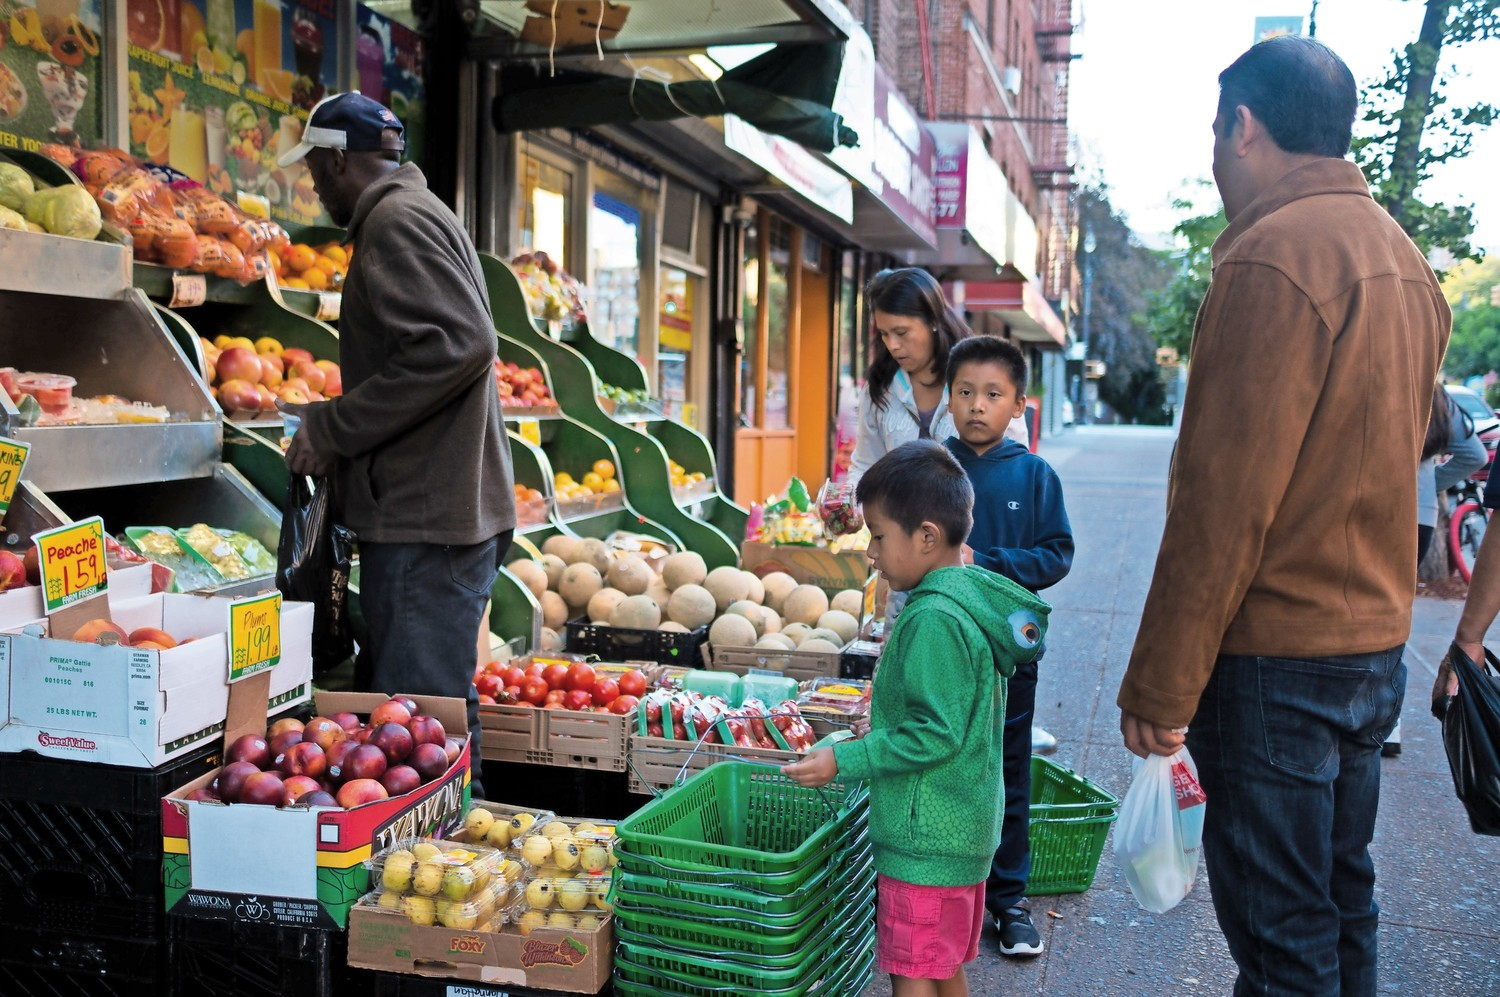 A family peruses the produce selection at California Farms, a popular store on West 231st Street owned by a Mexican-American family.